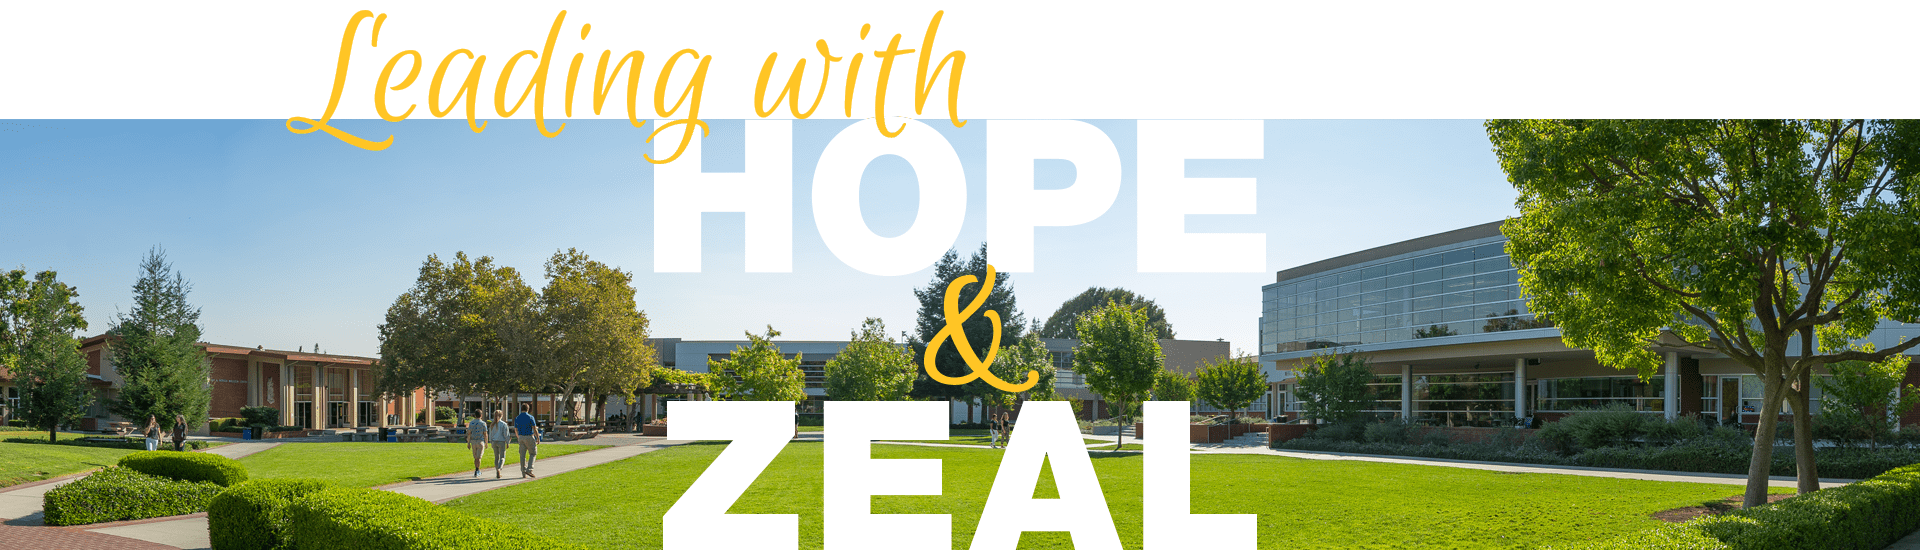 Leading with Hope & Zeal